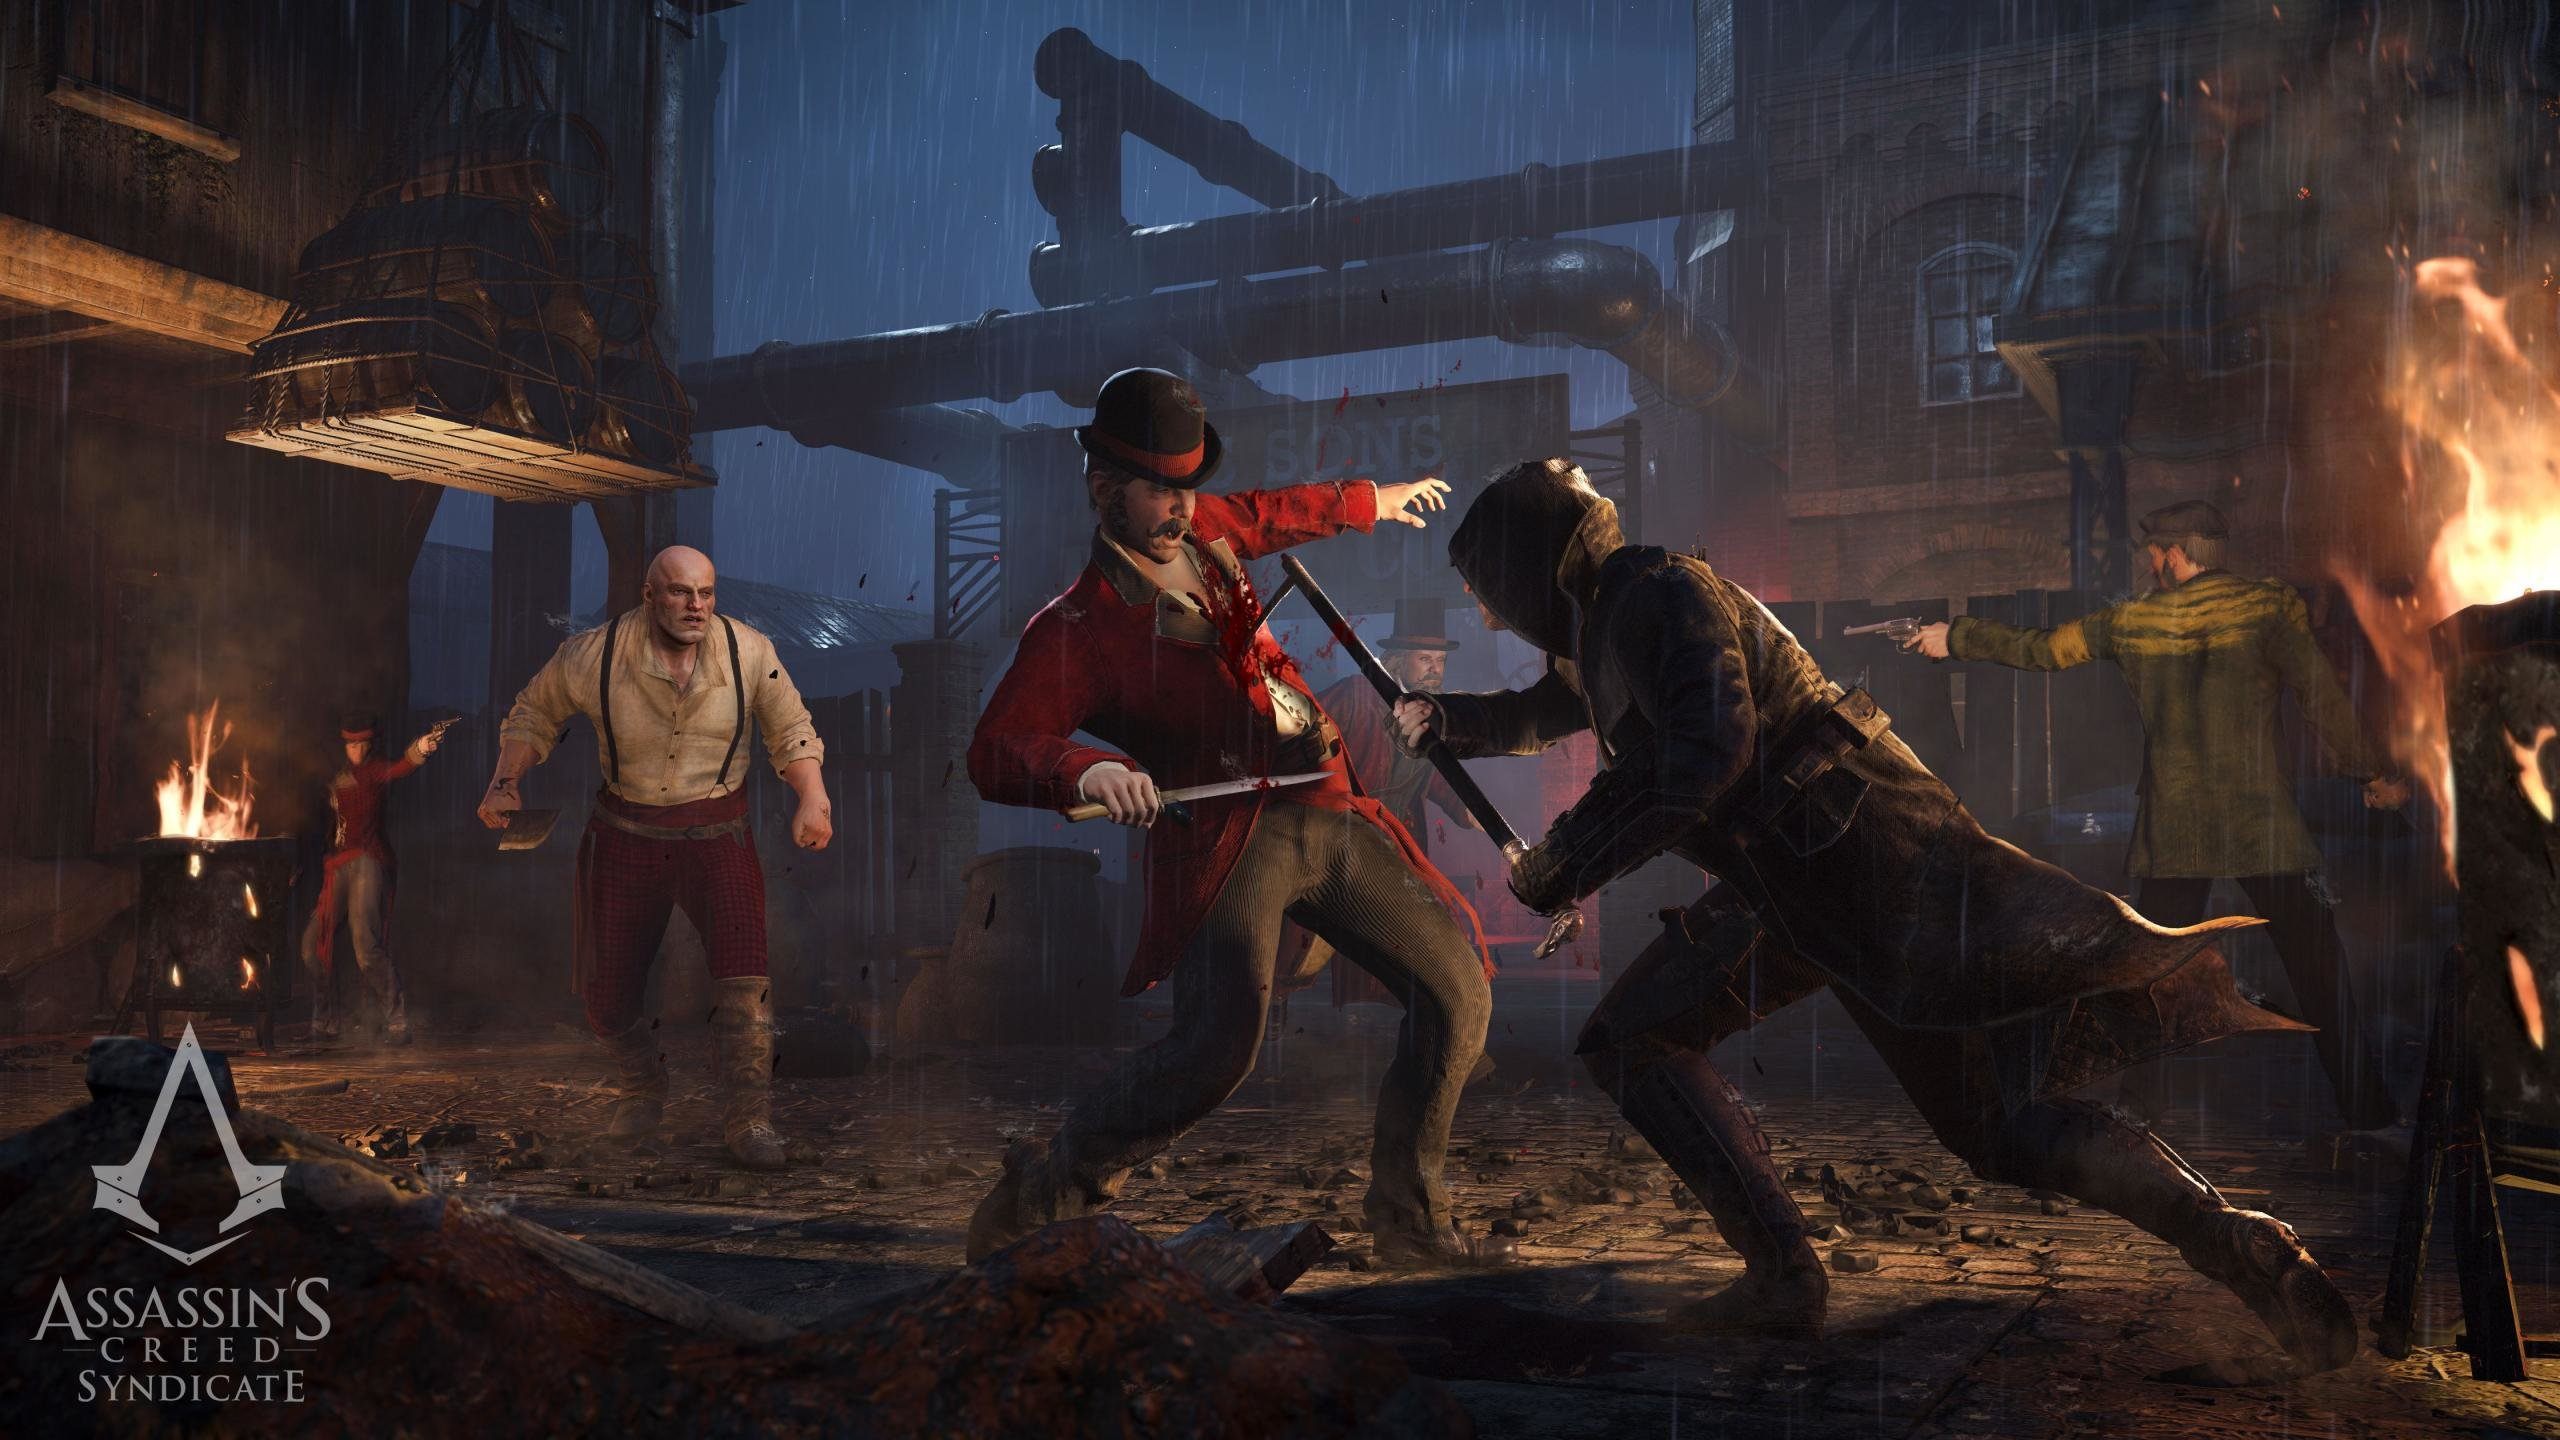 High Resolution Assassin S Creed Syndicate Hd 2560x1440 Wallpaper